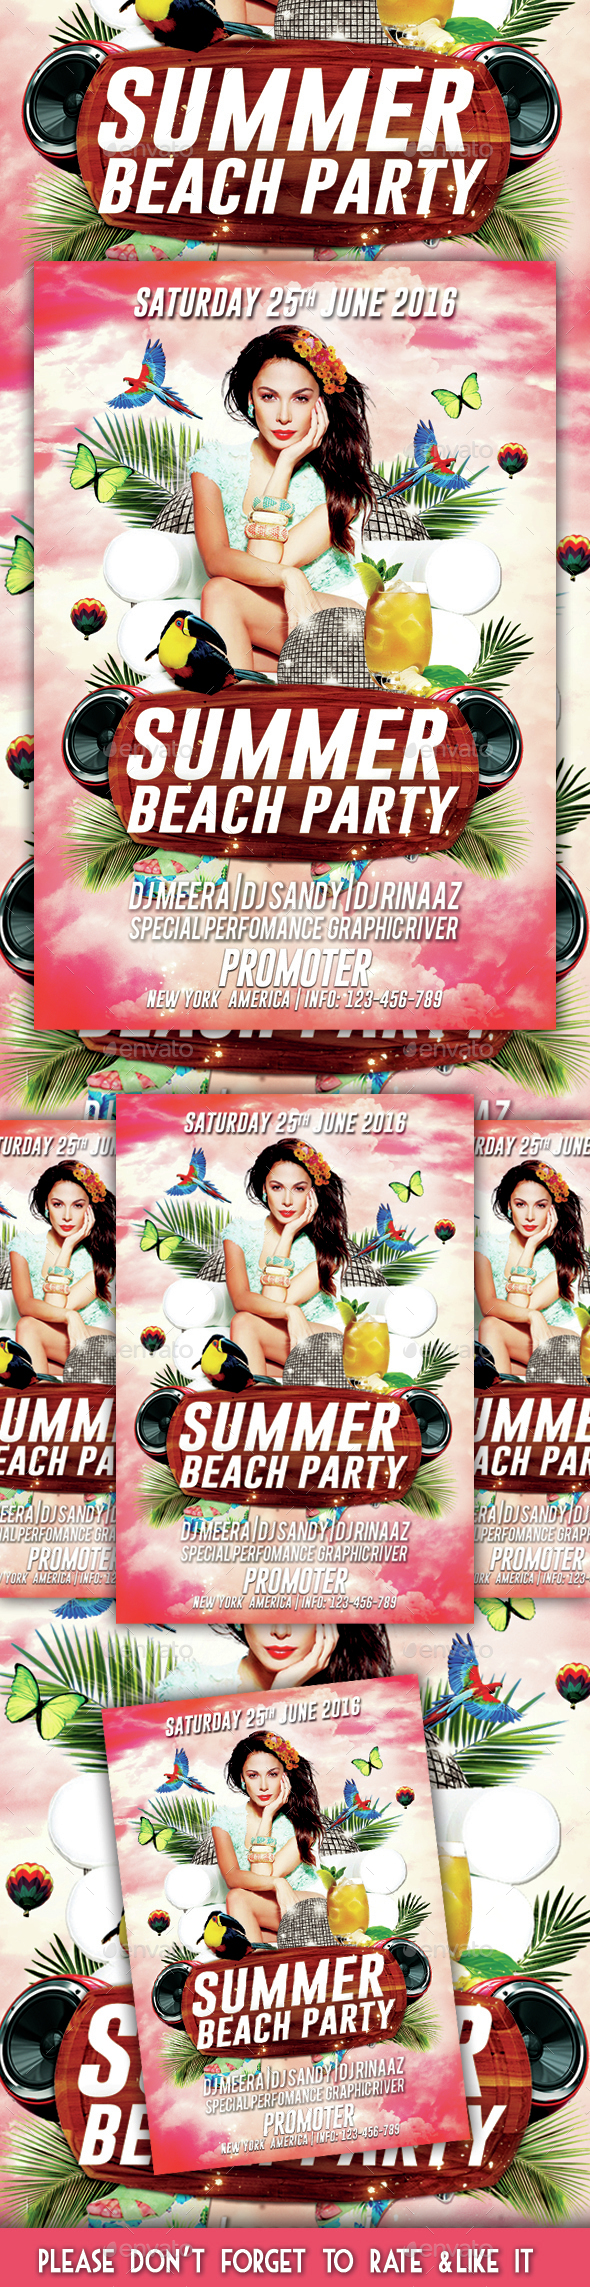 Summer Beach Party Flyer 2 - Flyers Print Templates